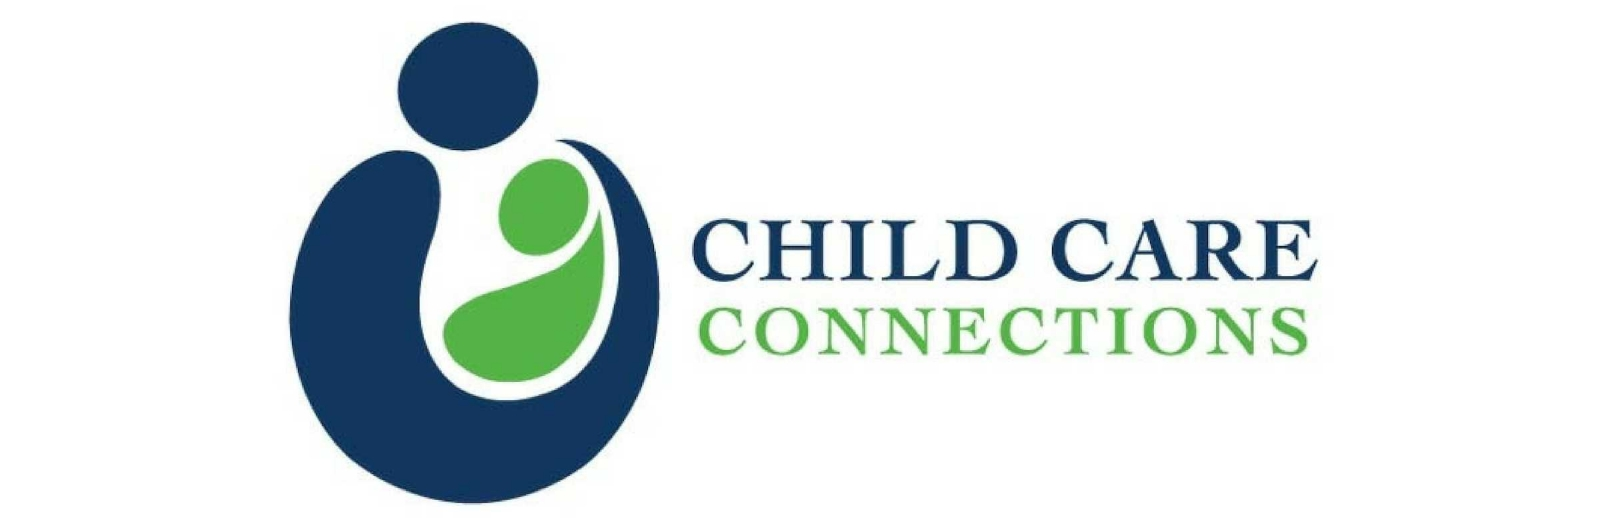 Child Care Connections